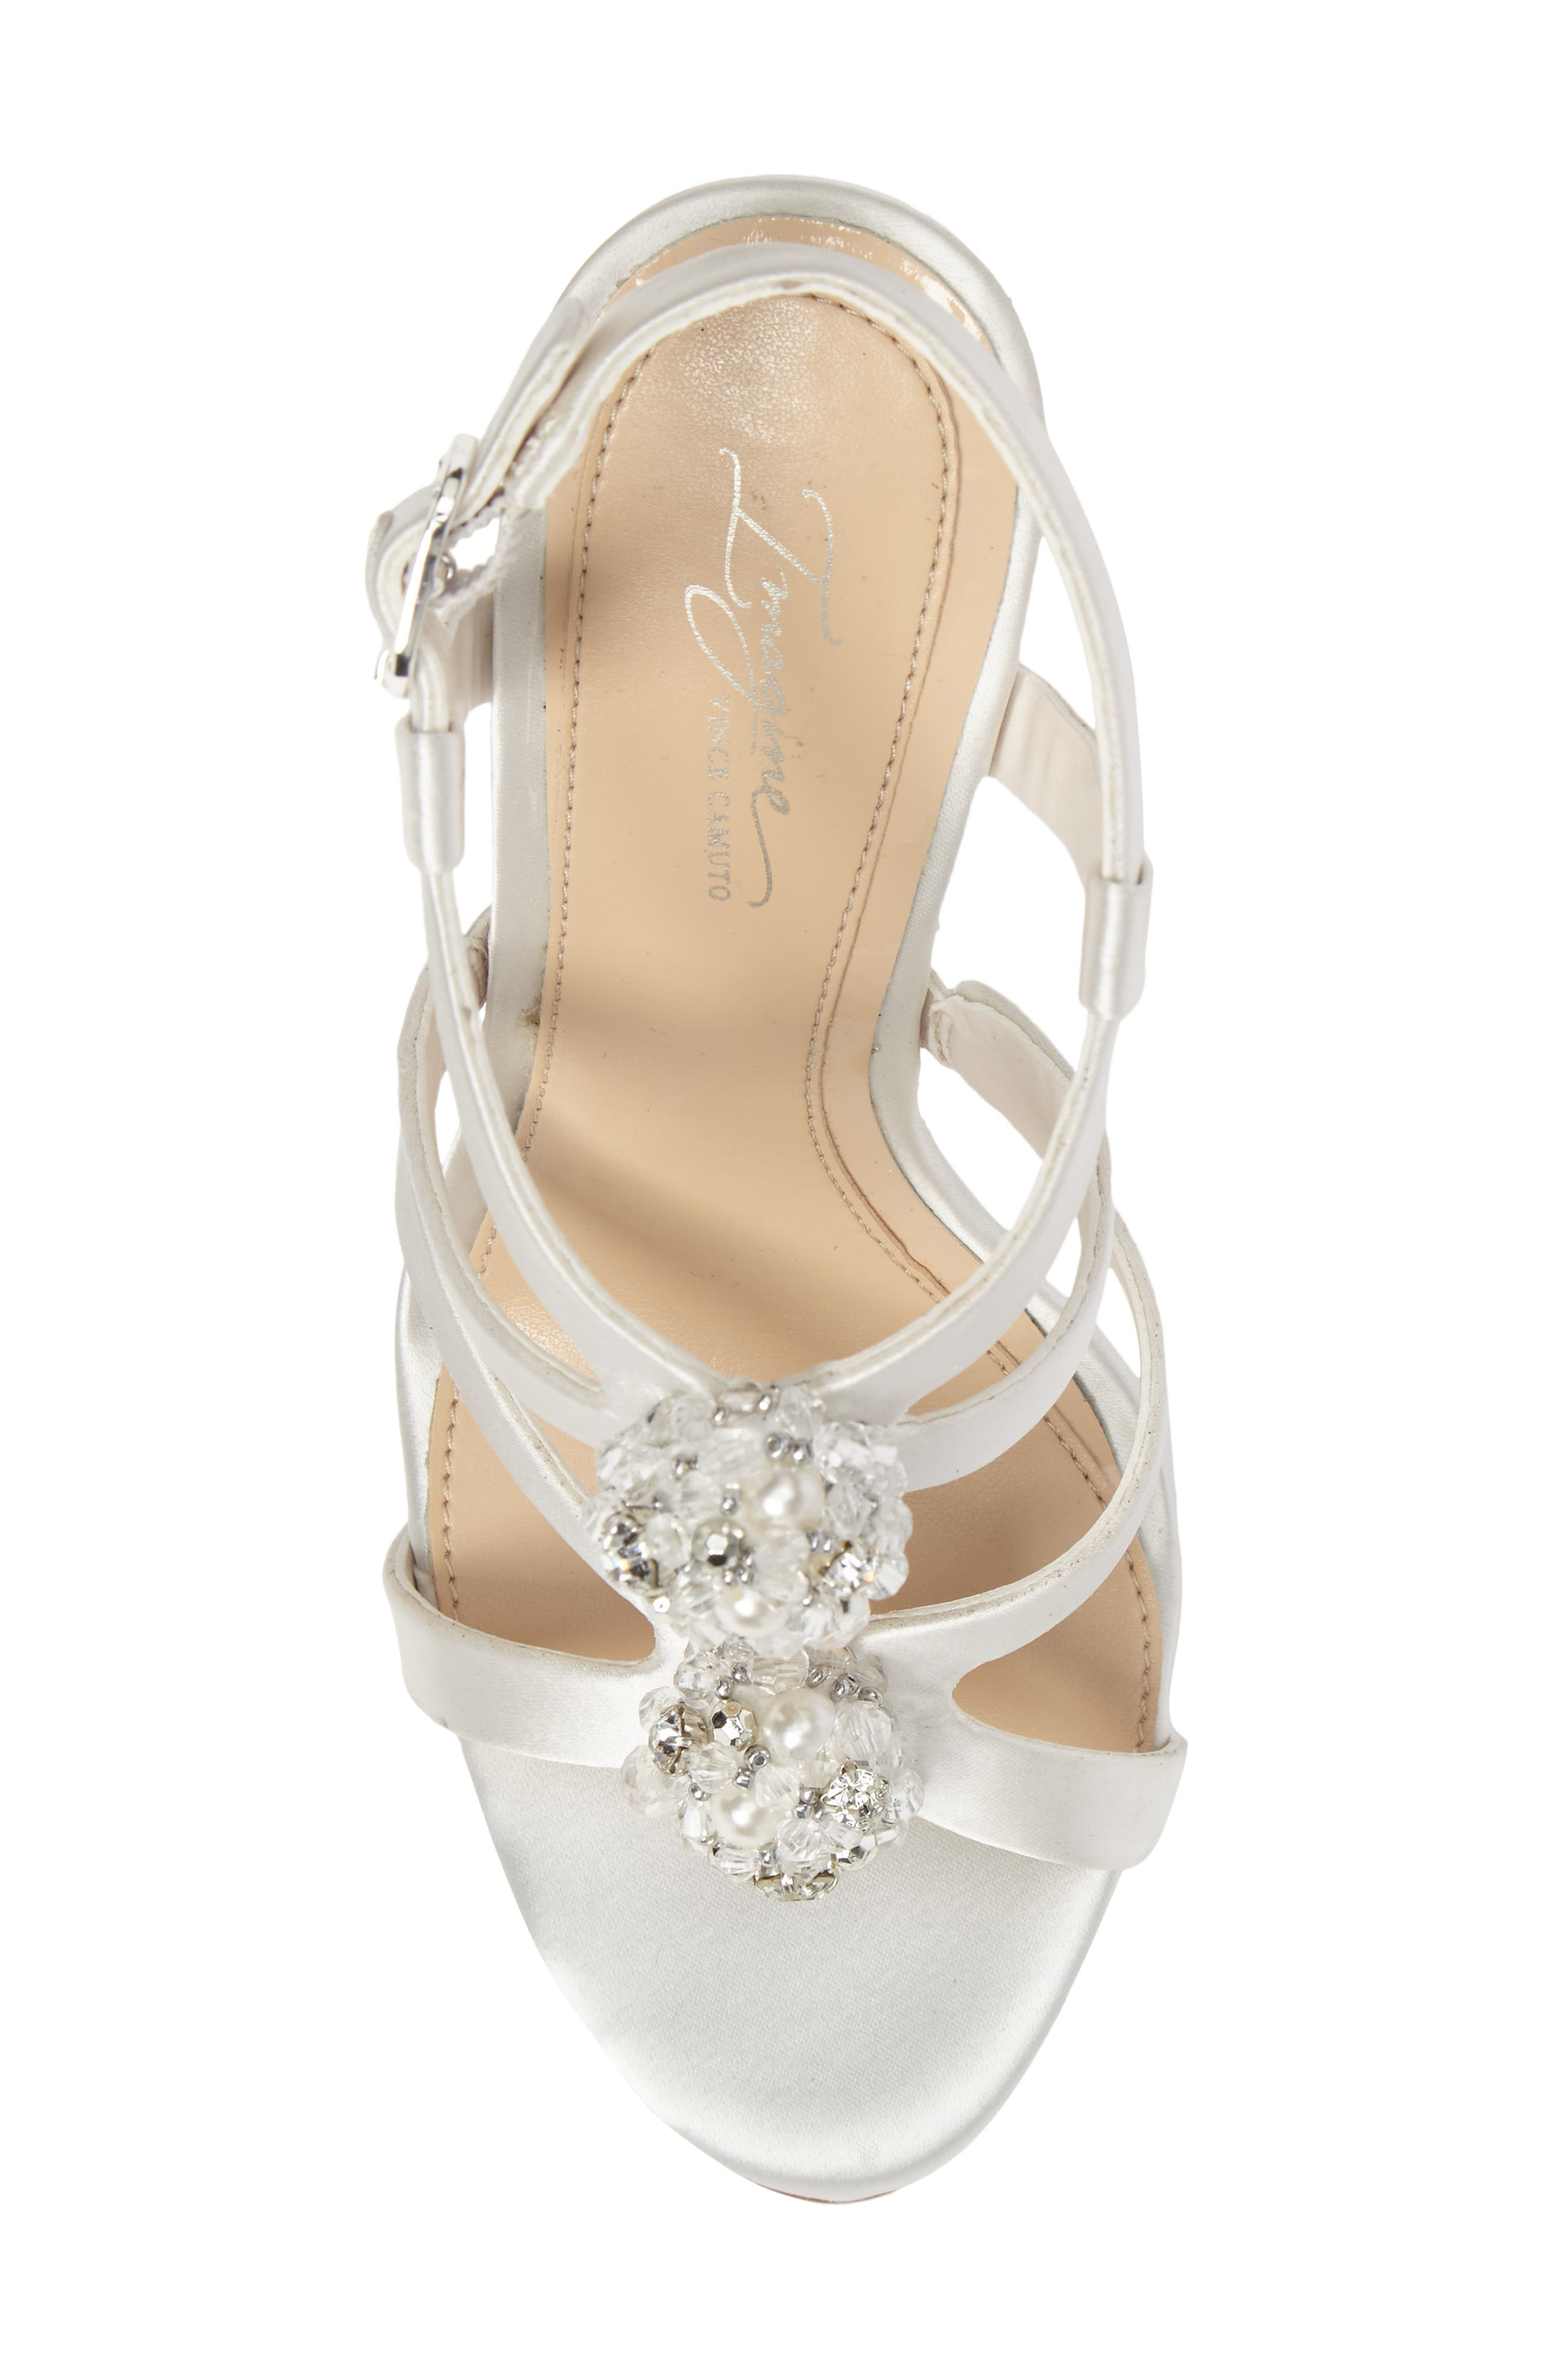 Daija Sandal,                             Alternate thumbnail 5, color,                             Ivory Satin